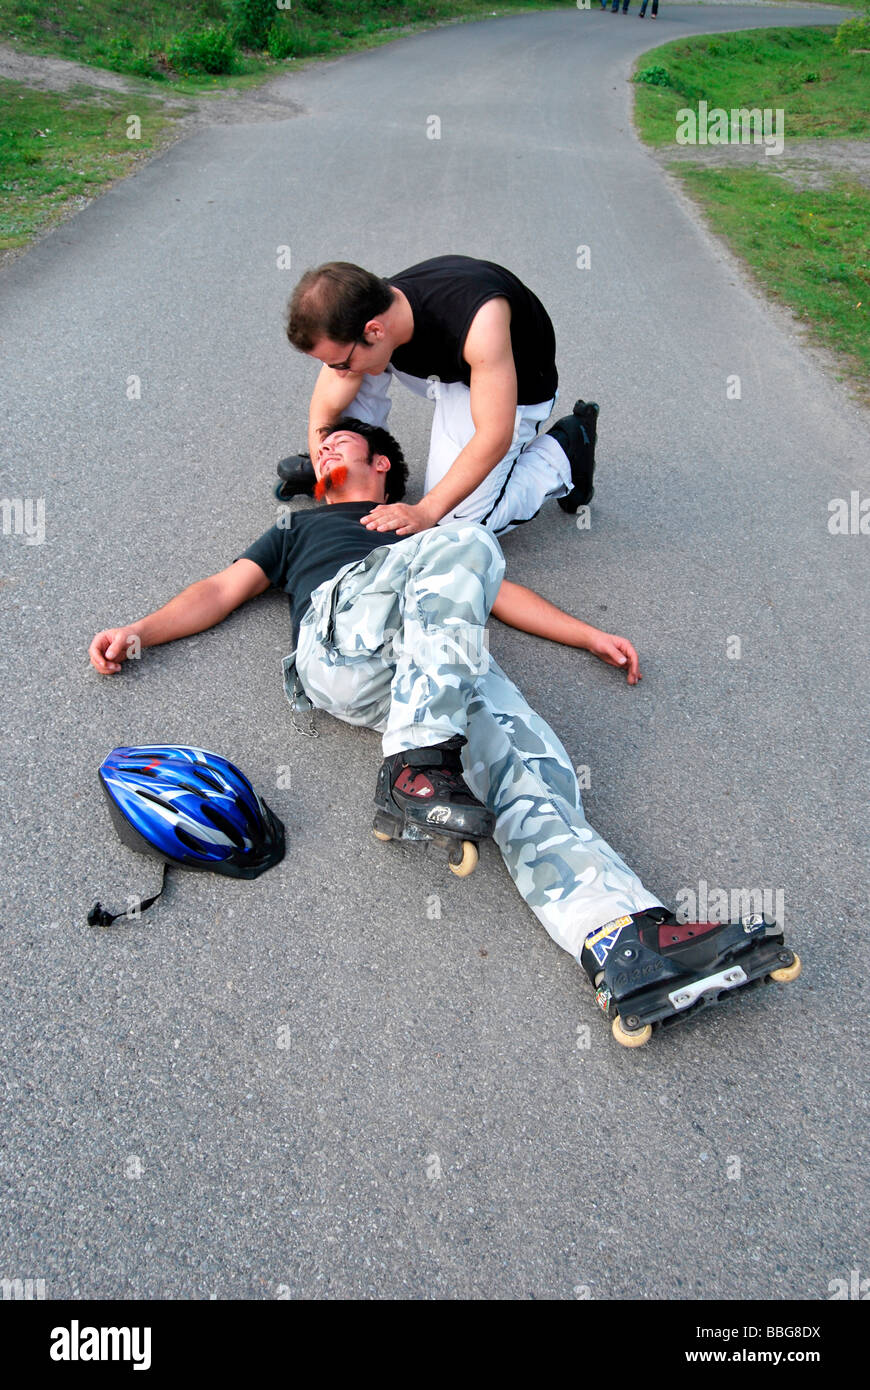 First aid, in-line skater on the floor after fall, motionless, person helping - Stock Image